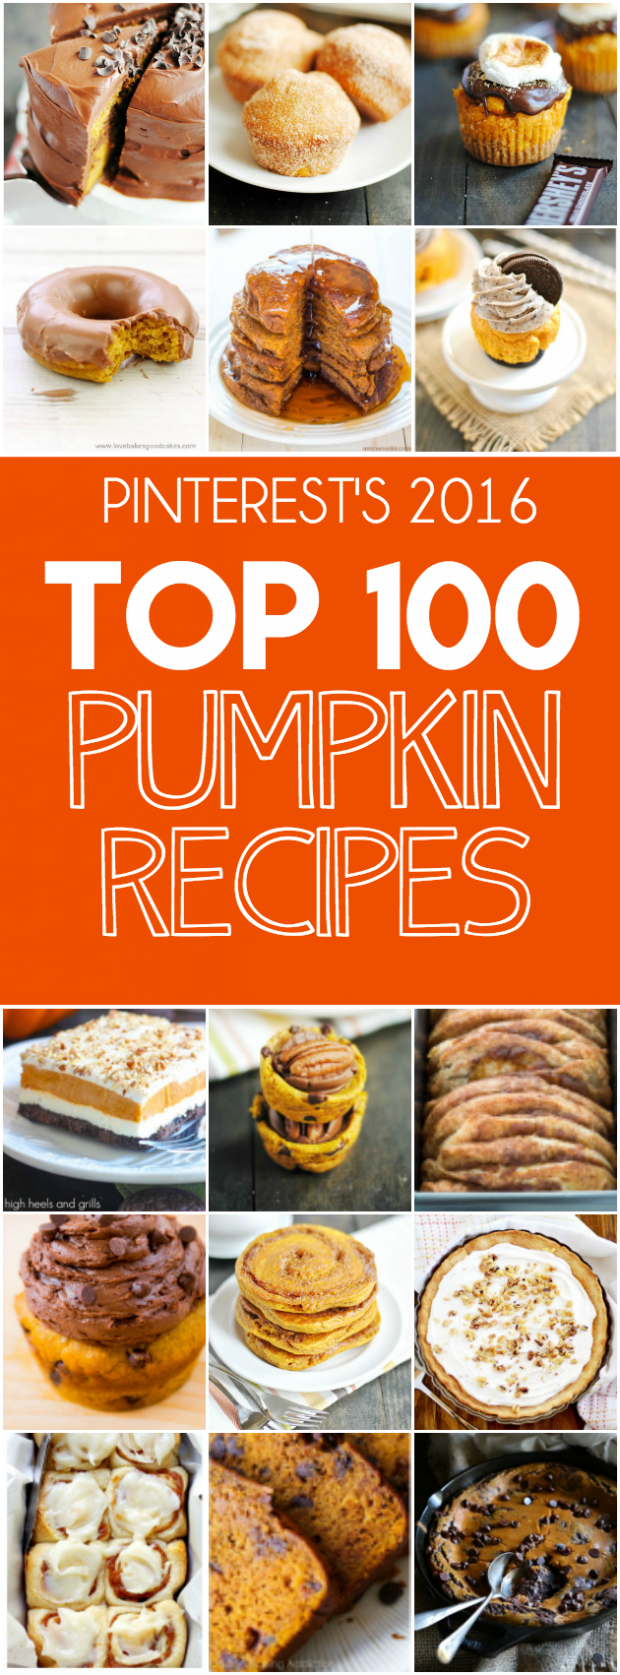 100 of the yummiest and coziest pumpkin recipes to go on your must-make recipe list for this Fall!